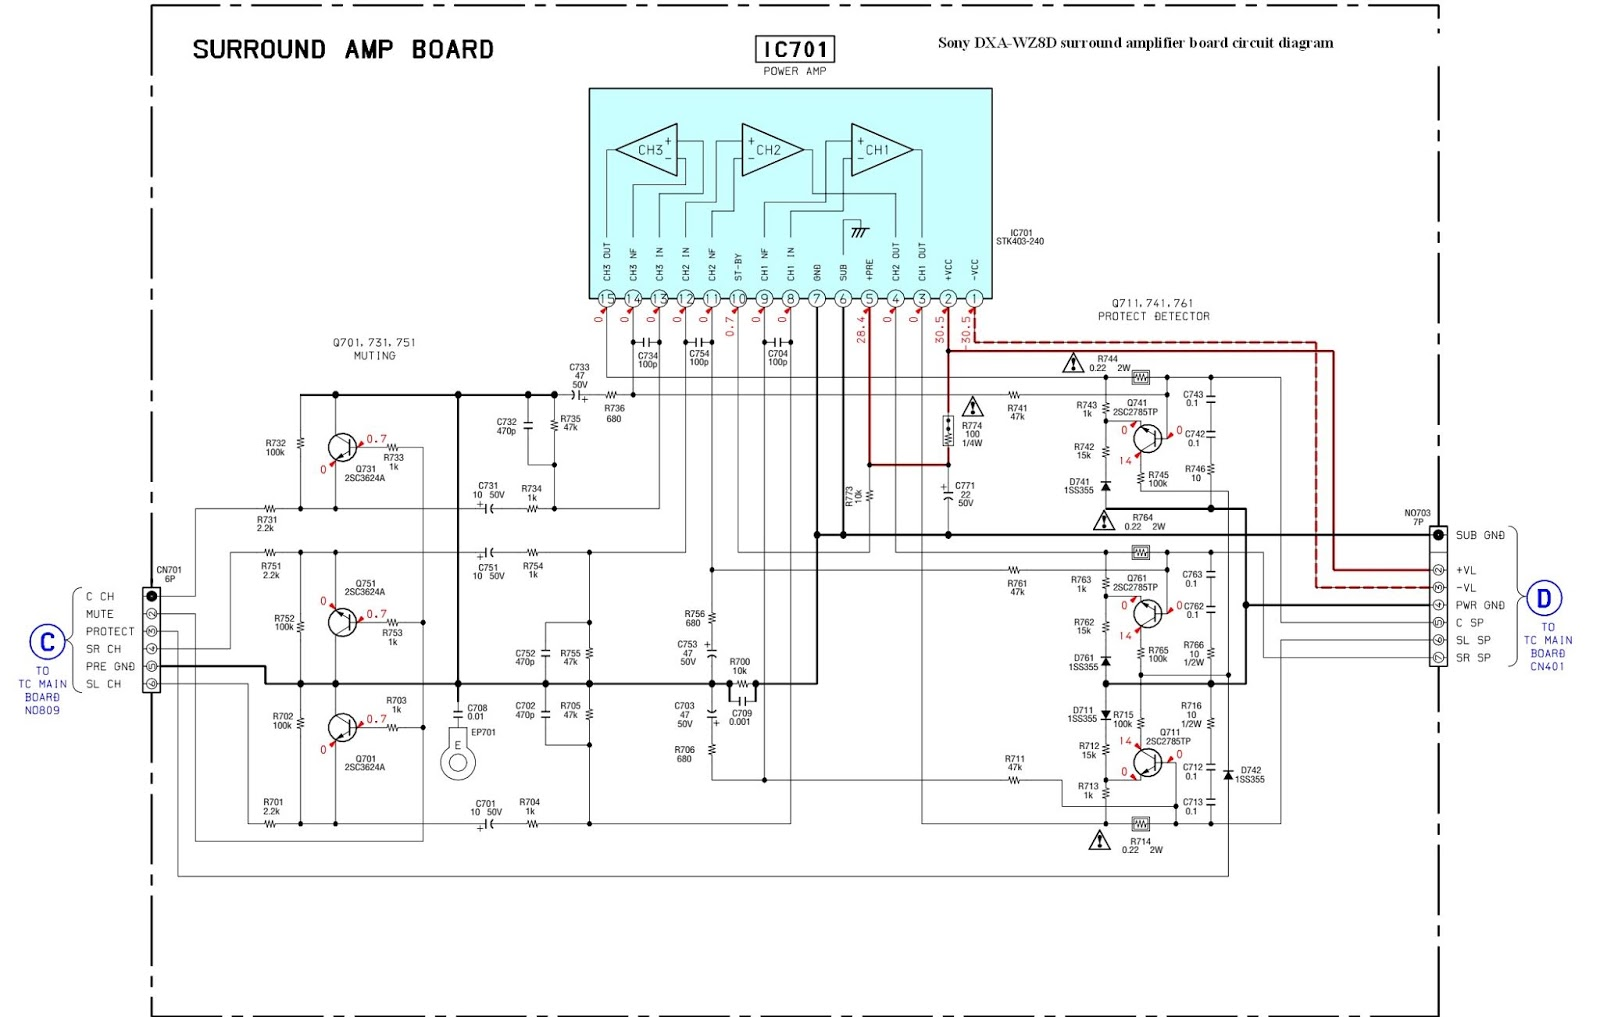 hight resolution of sony dxa wz8d surround amplifier board circuit diagram